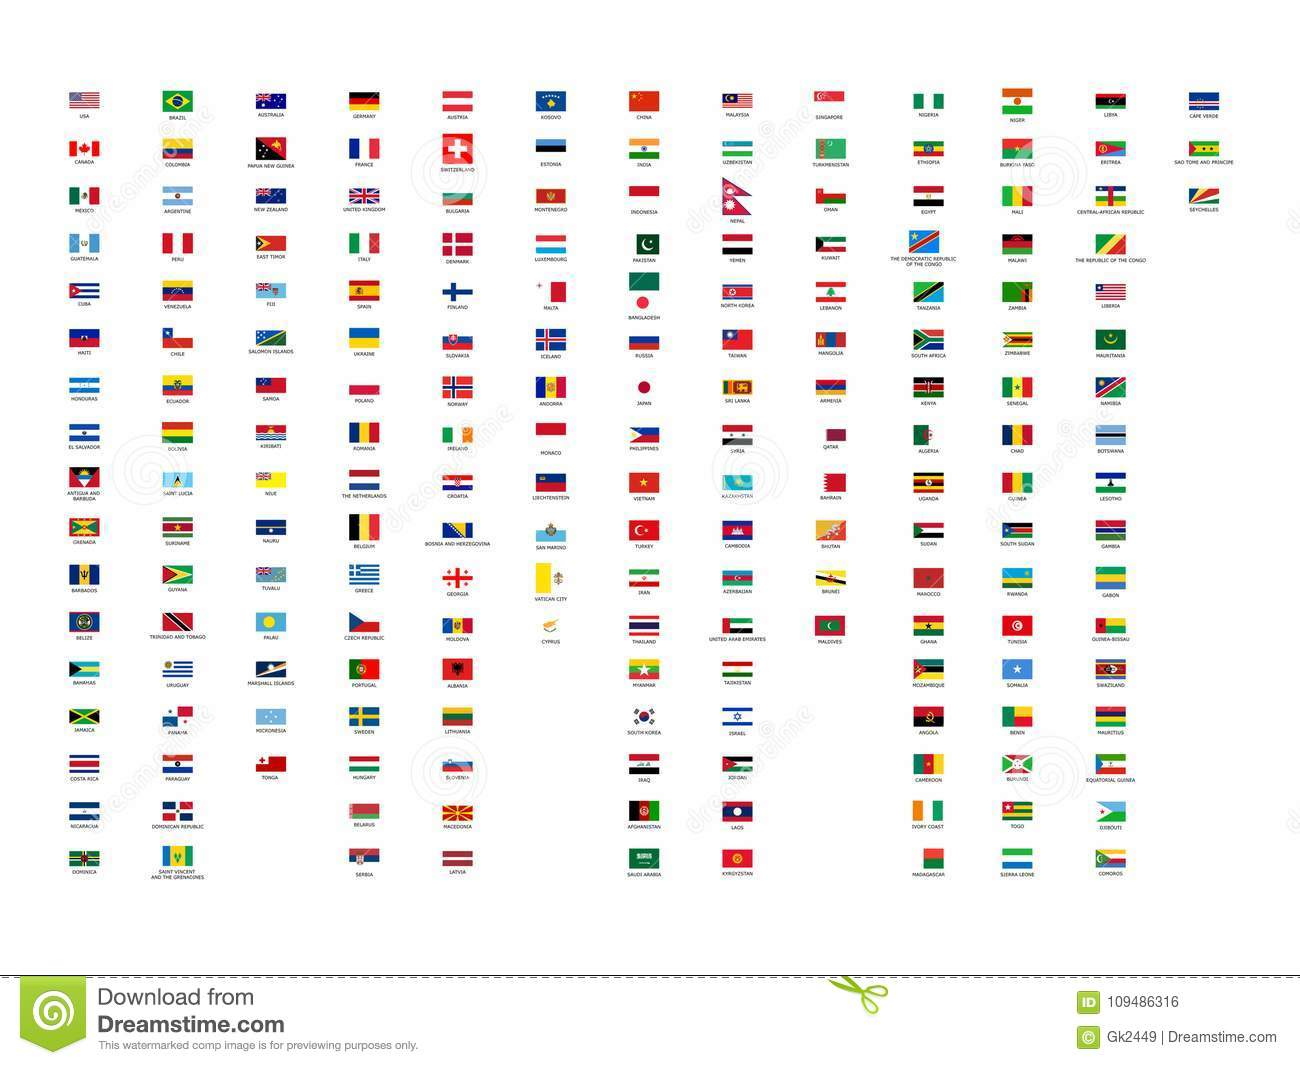 194 Vector Best All Continents World Flags Collection With ...Flags Of Asia With Names